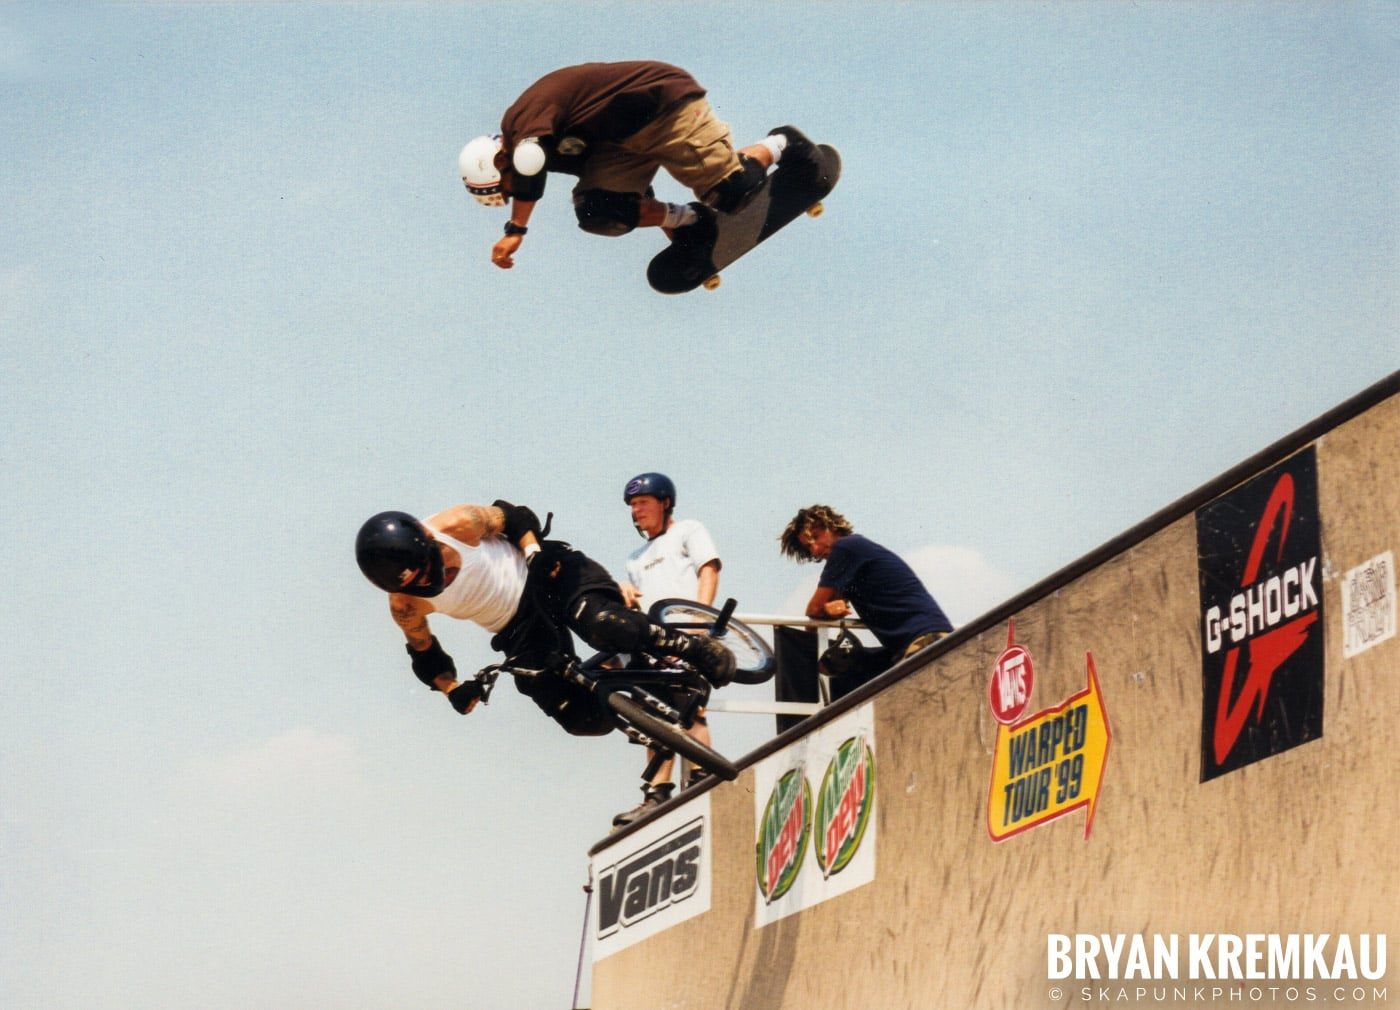 Skaters @ Vans Warped Tour, Randall's Island, NYC - 7.16.99 (4)